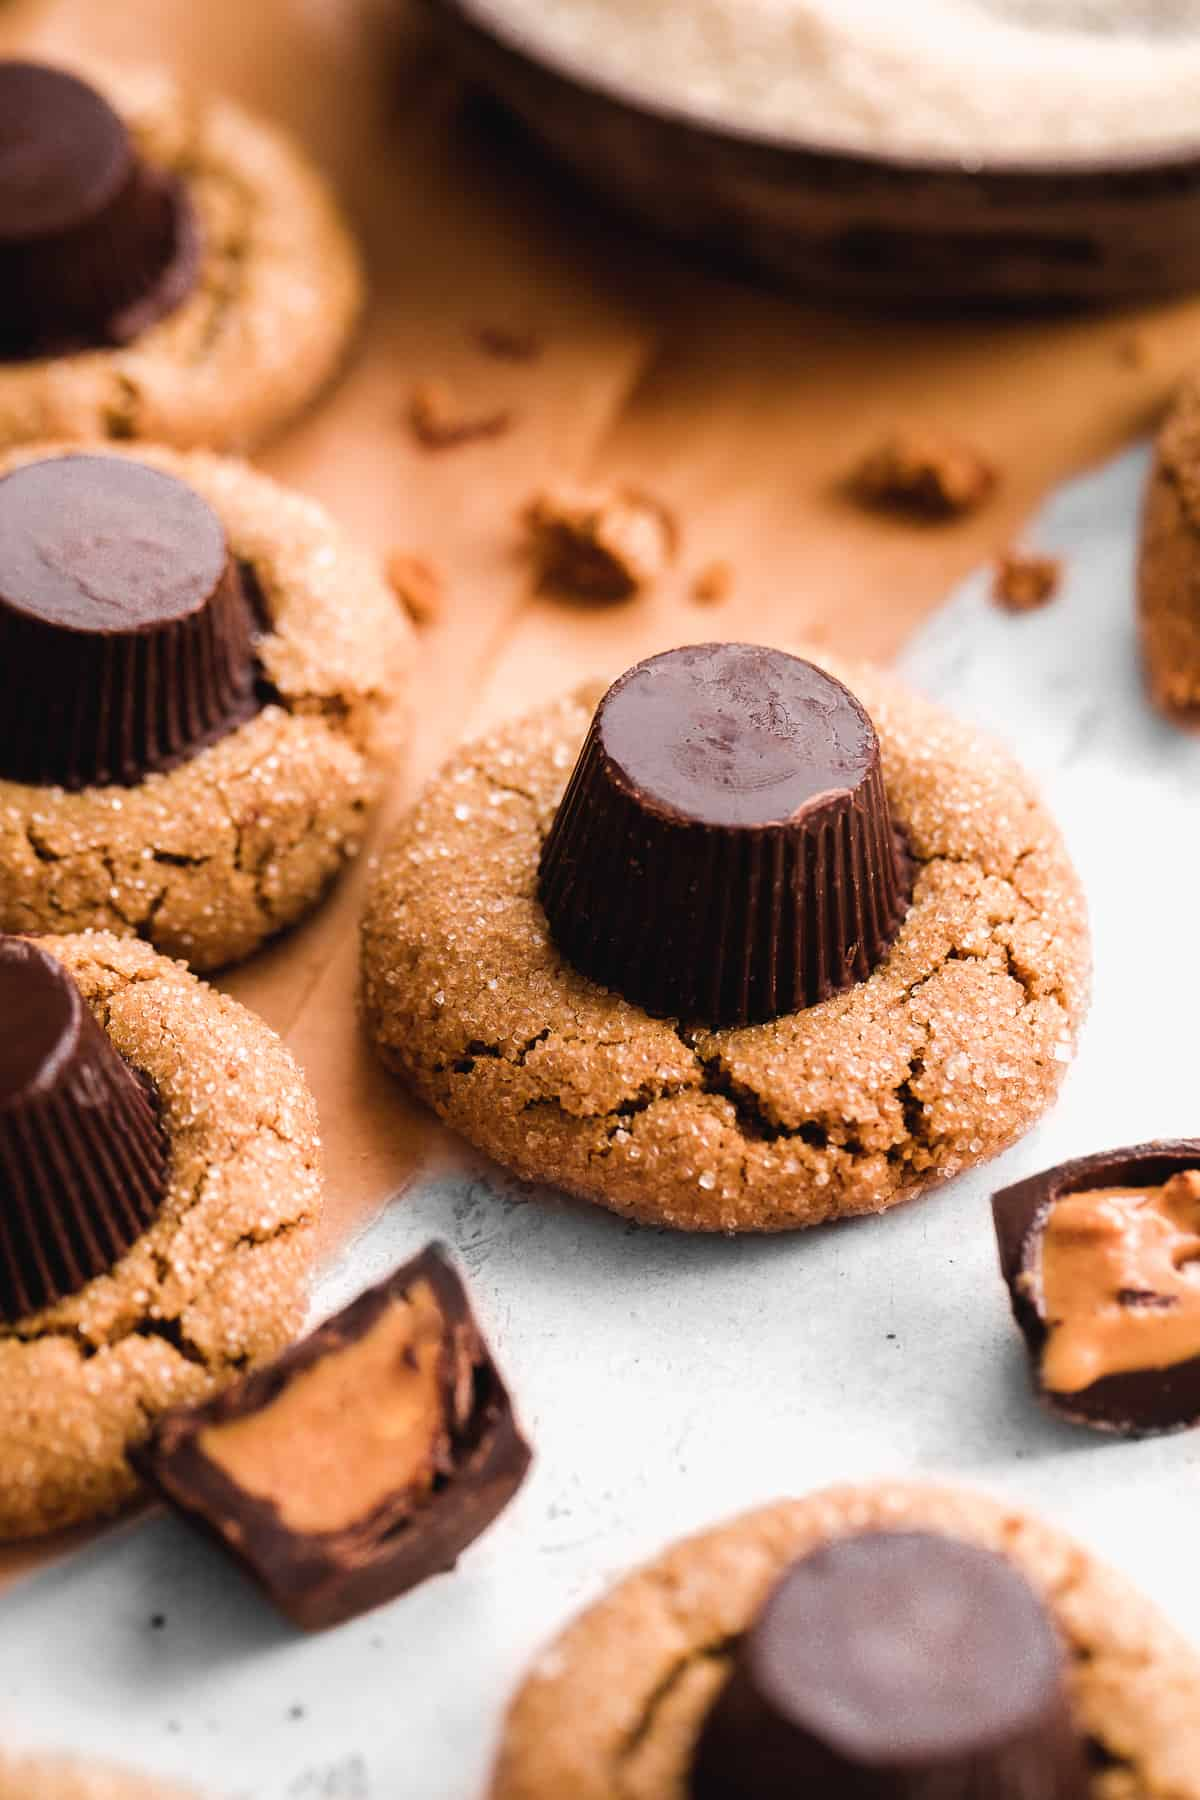 Cookies with a peanut butter cup on top and sugar coating scattered on a surface.